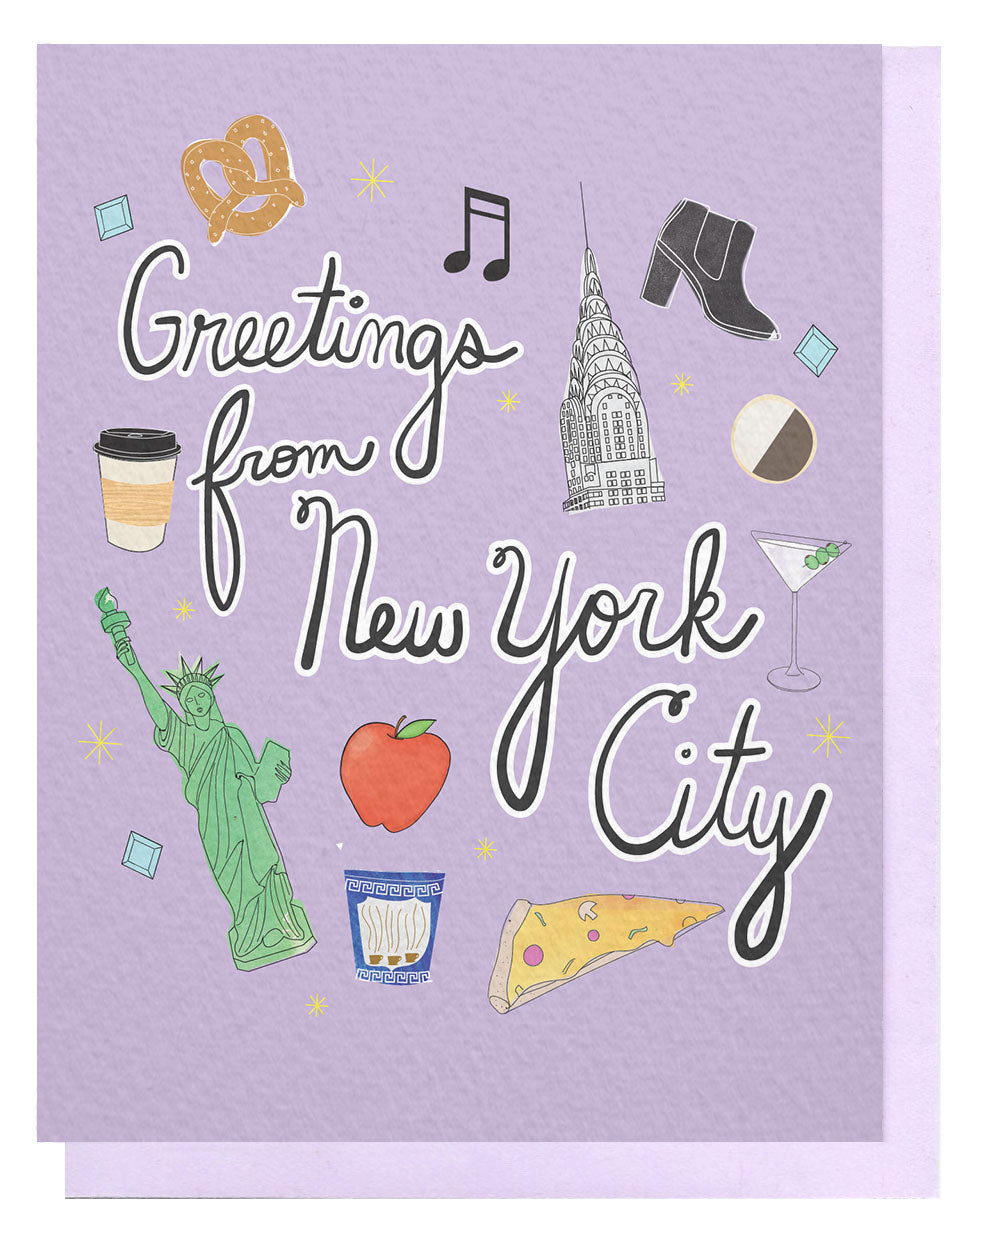 Greetings from nyc card violet clair greetings from nyc card m4hsunfo